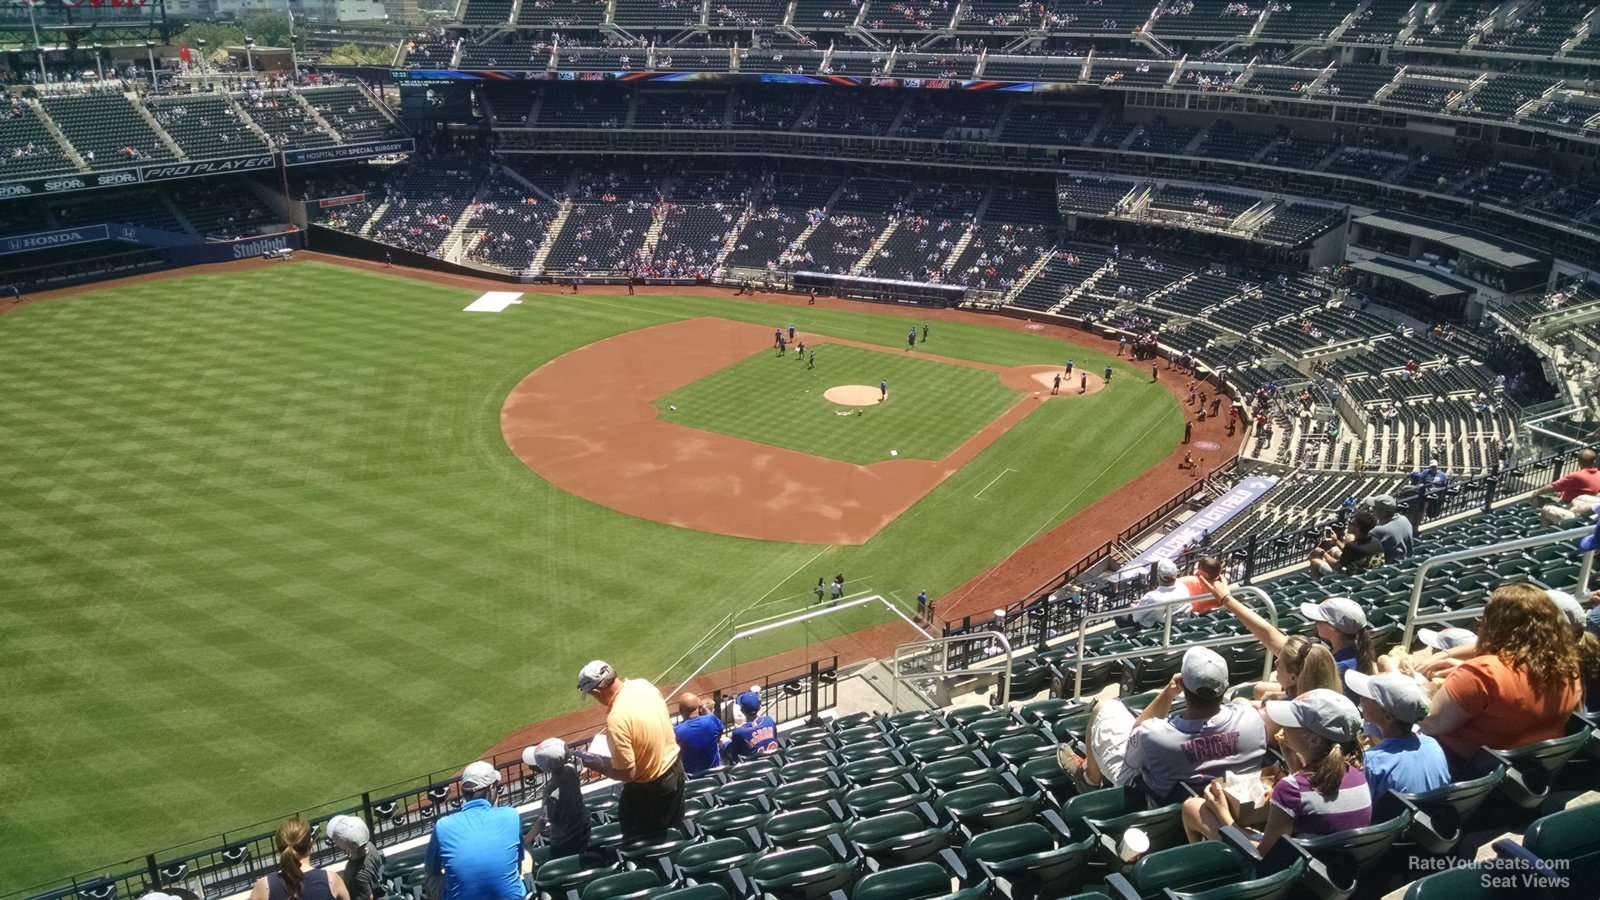 Citi Field Section 527 - RateYourSeats.com